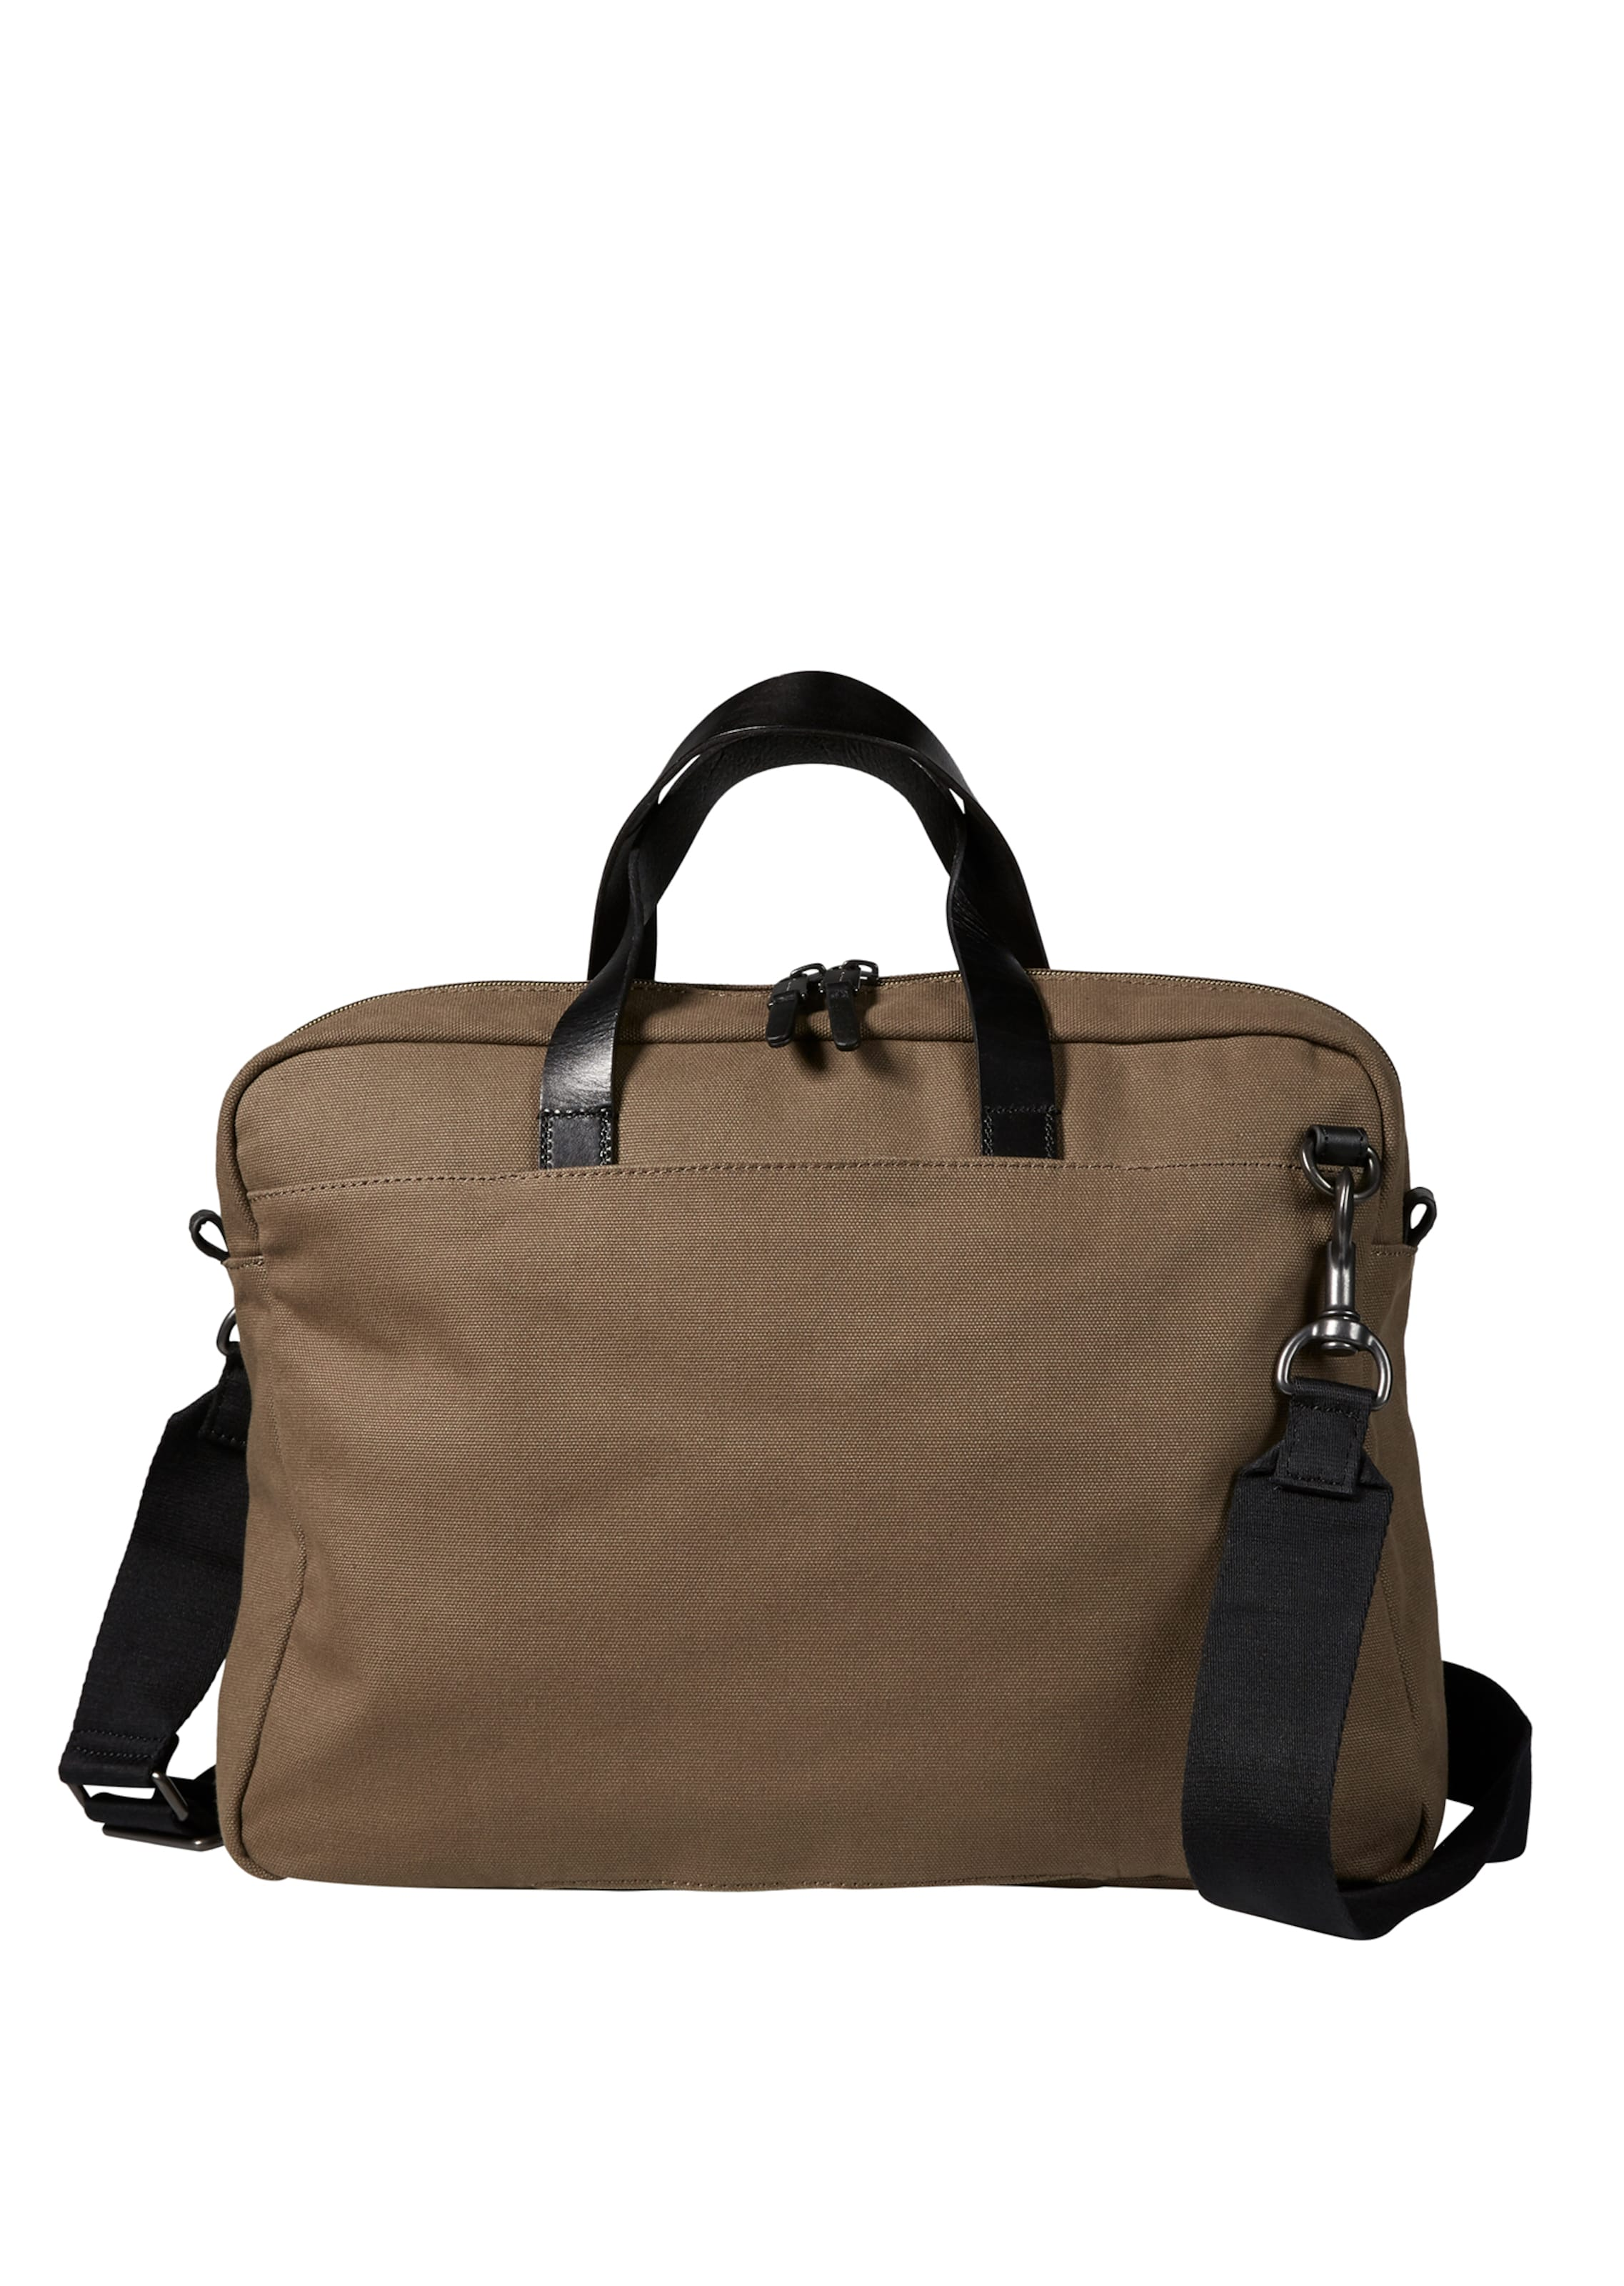 In BrokatDunkelbraun Business Bag Marc O'polo eWD9IEY2Hb